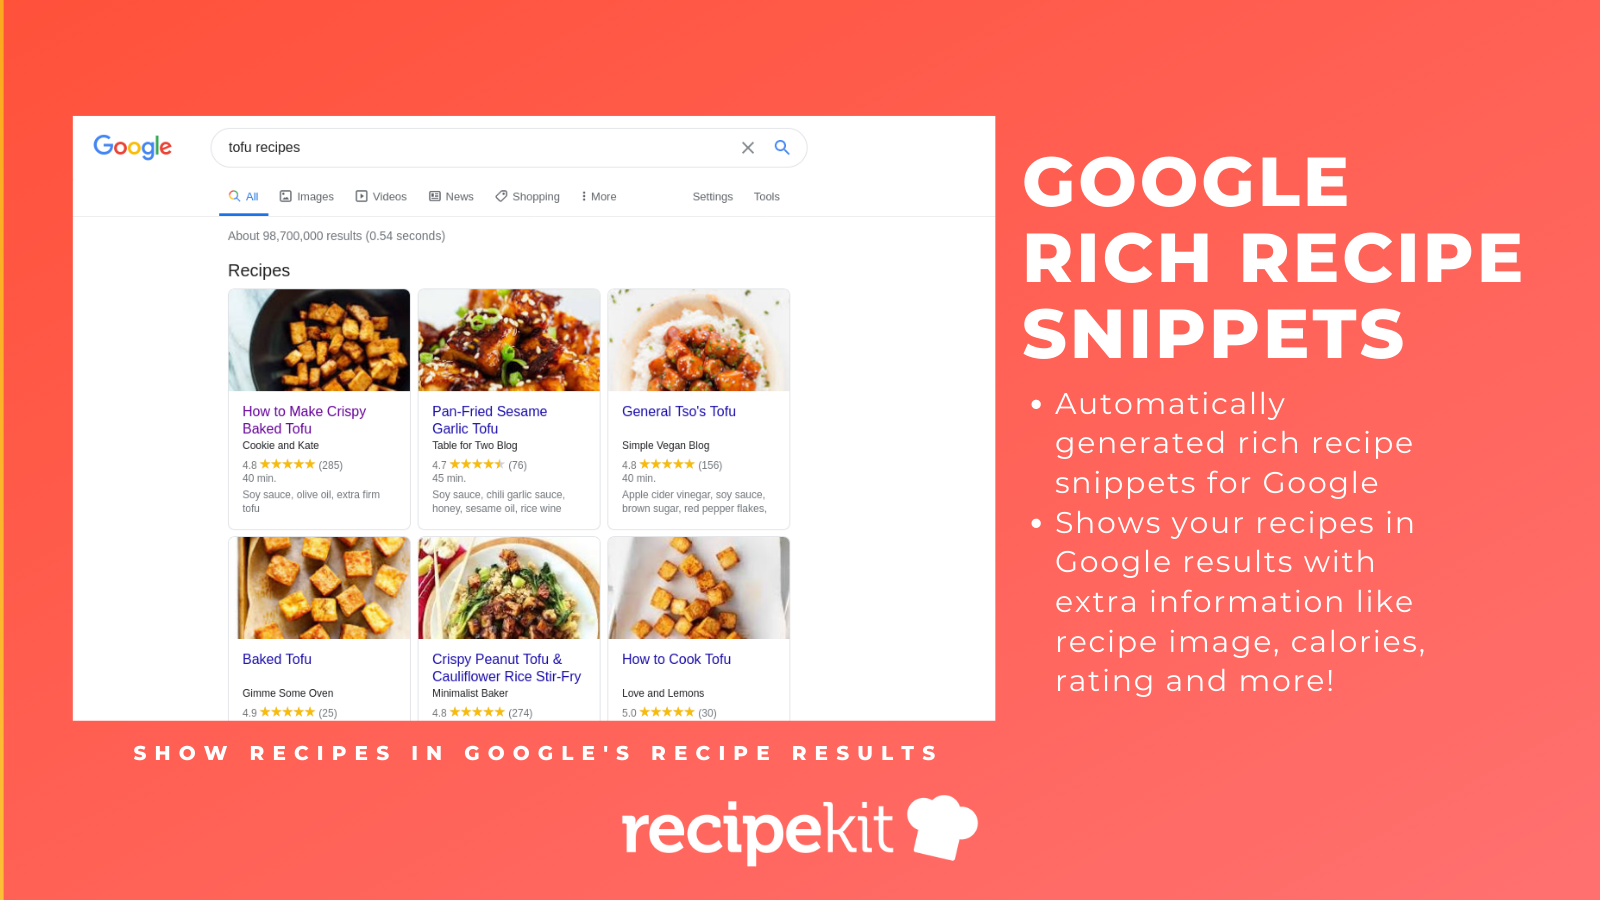 Show your recipes with Google's rich recipe snippet data